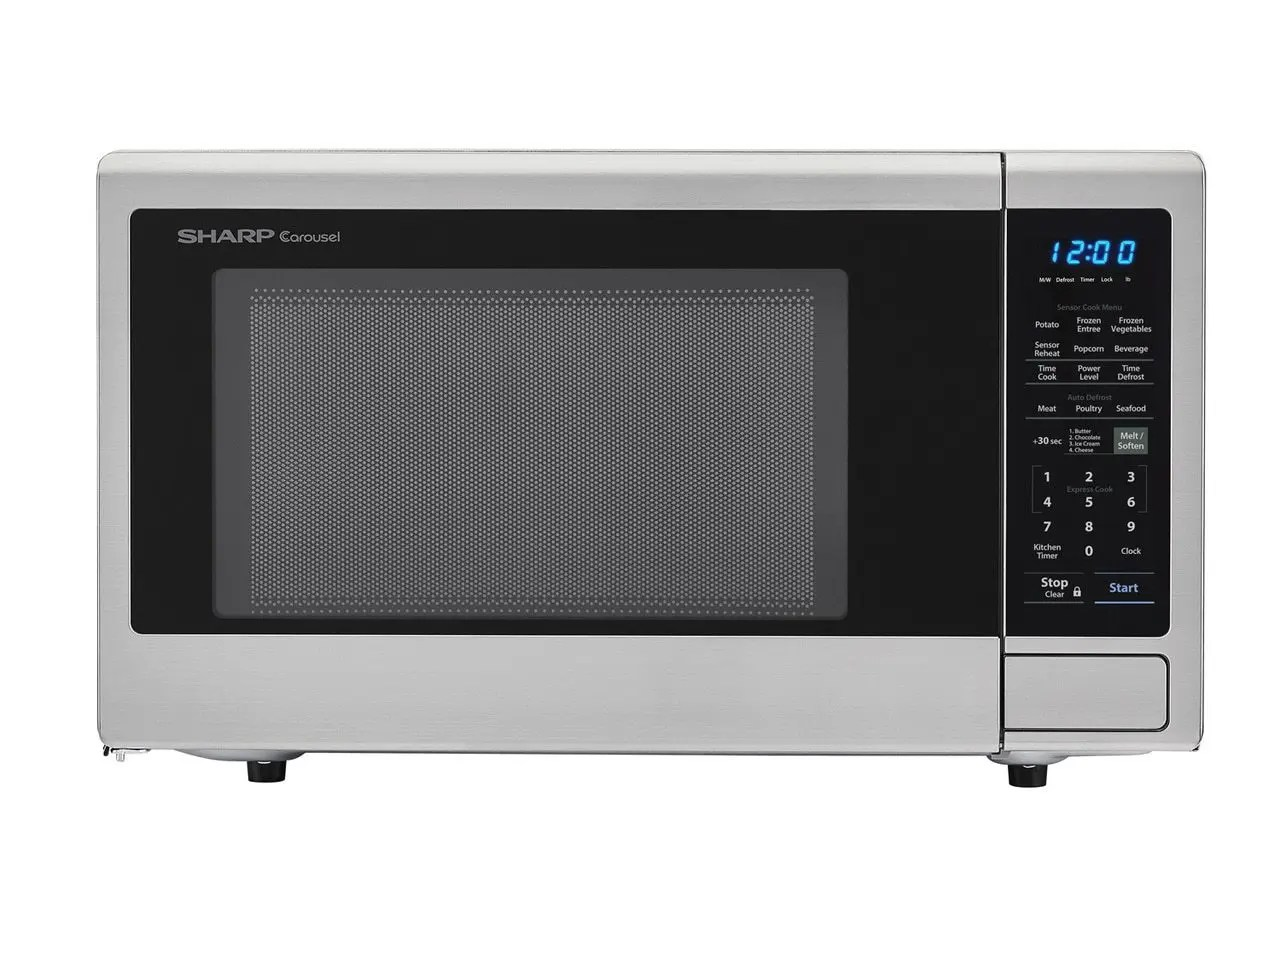 sharp 2 2 cu ft 1200w stainless steel countertop microwave oven